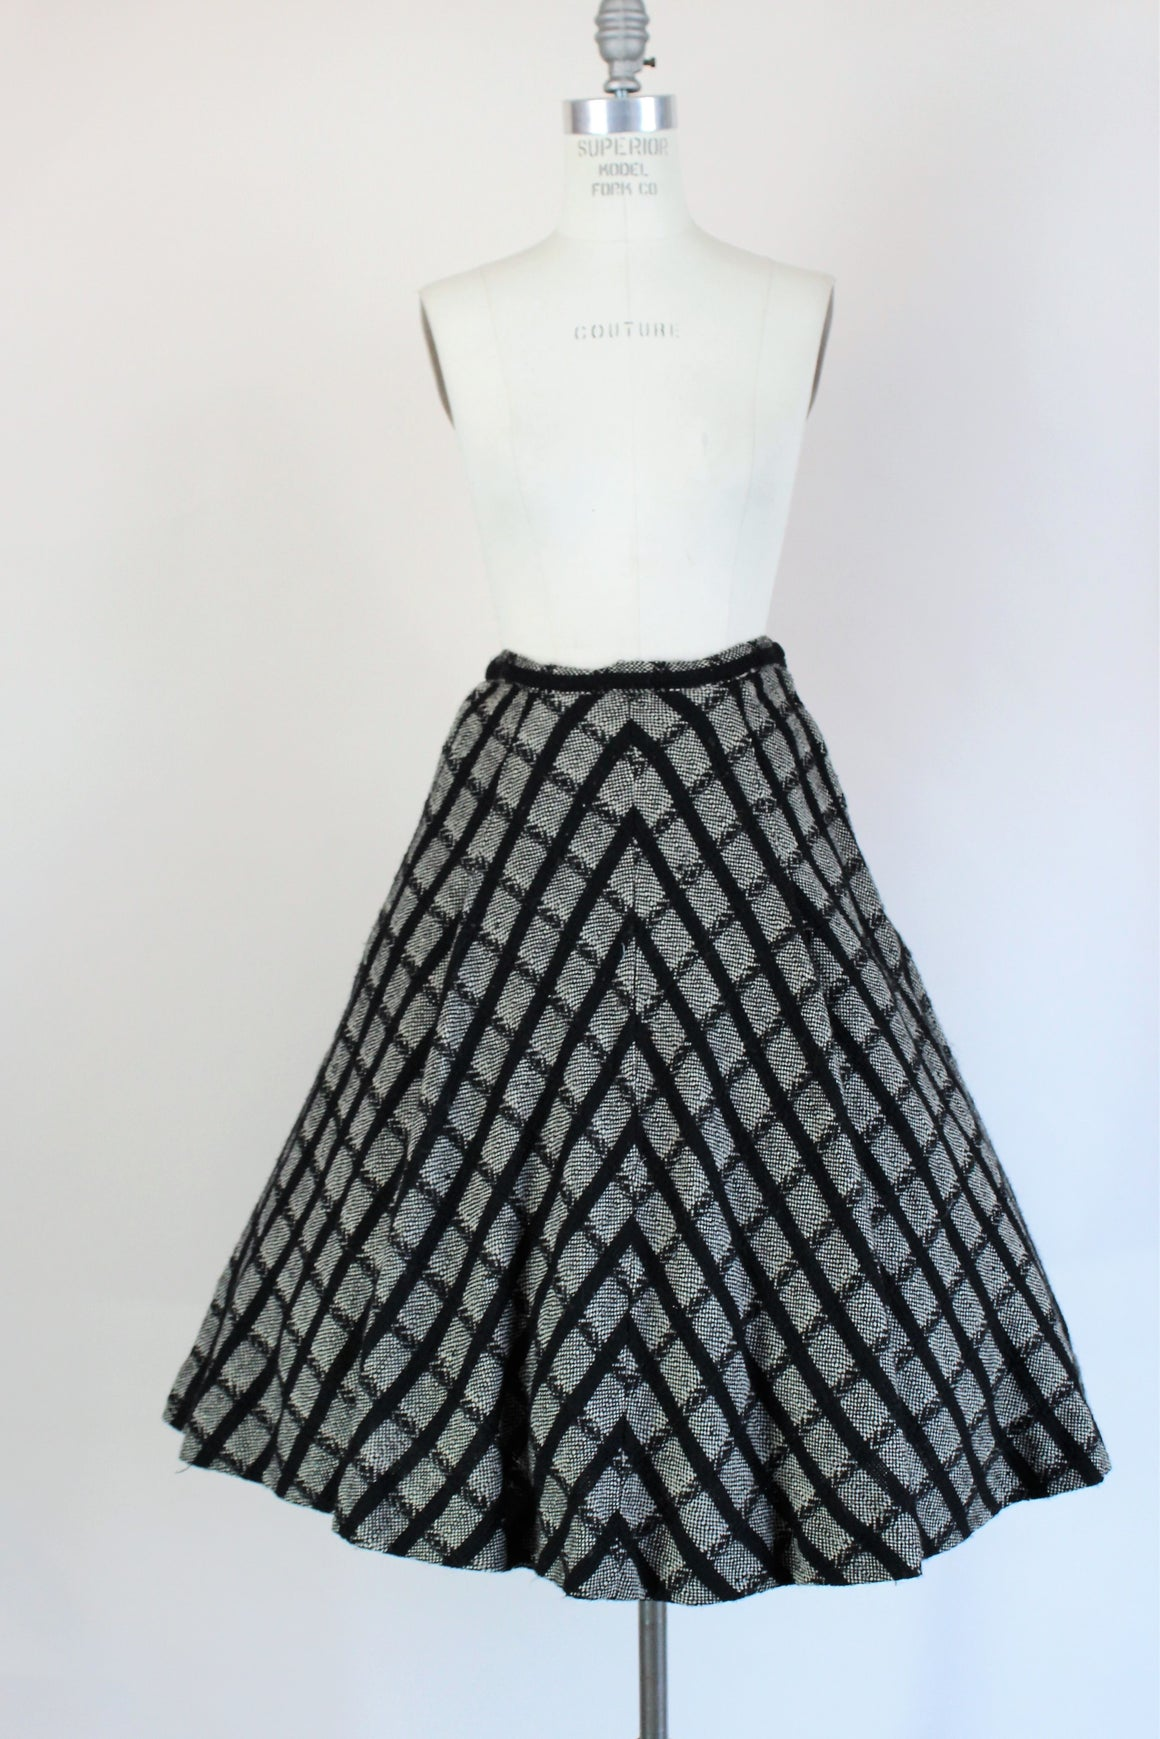 Vintage 1950s Black And White Wool Nelly De Grab Full Circle Skirt With Pocket